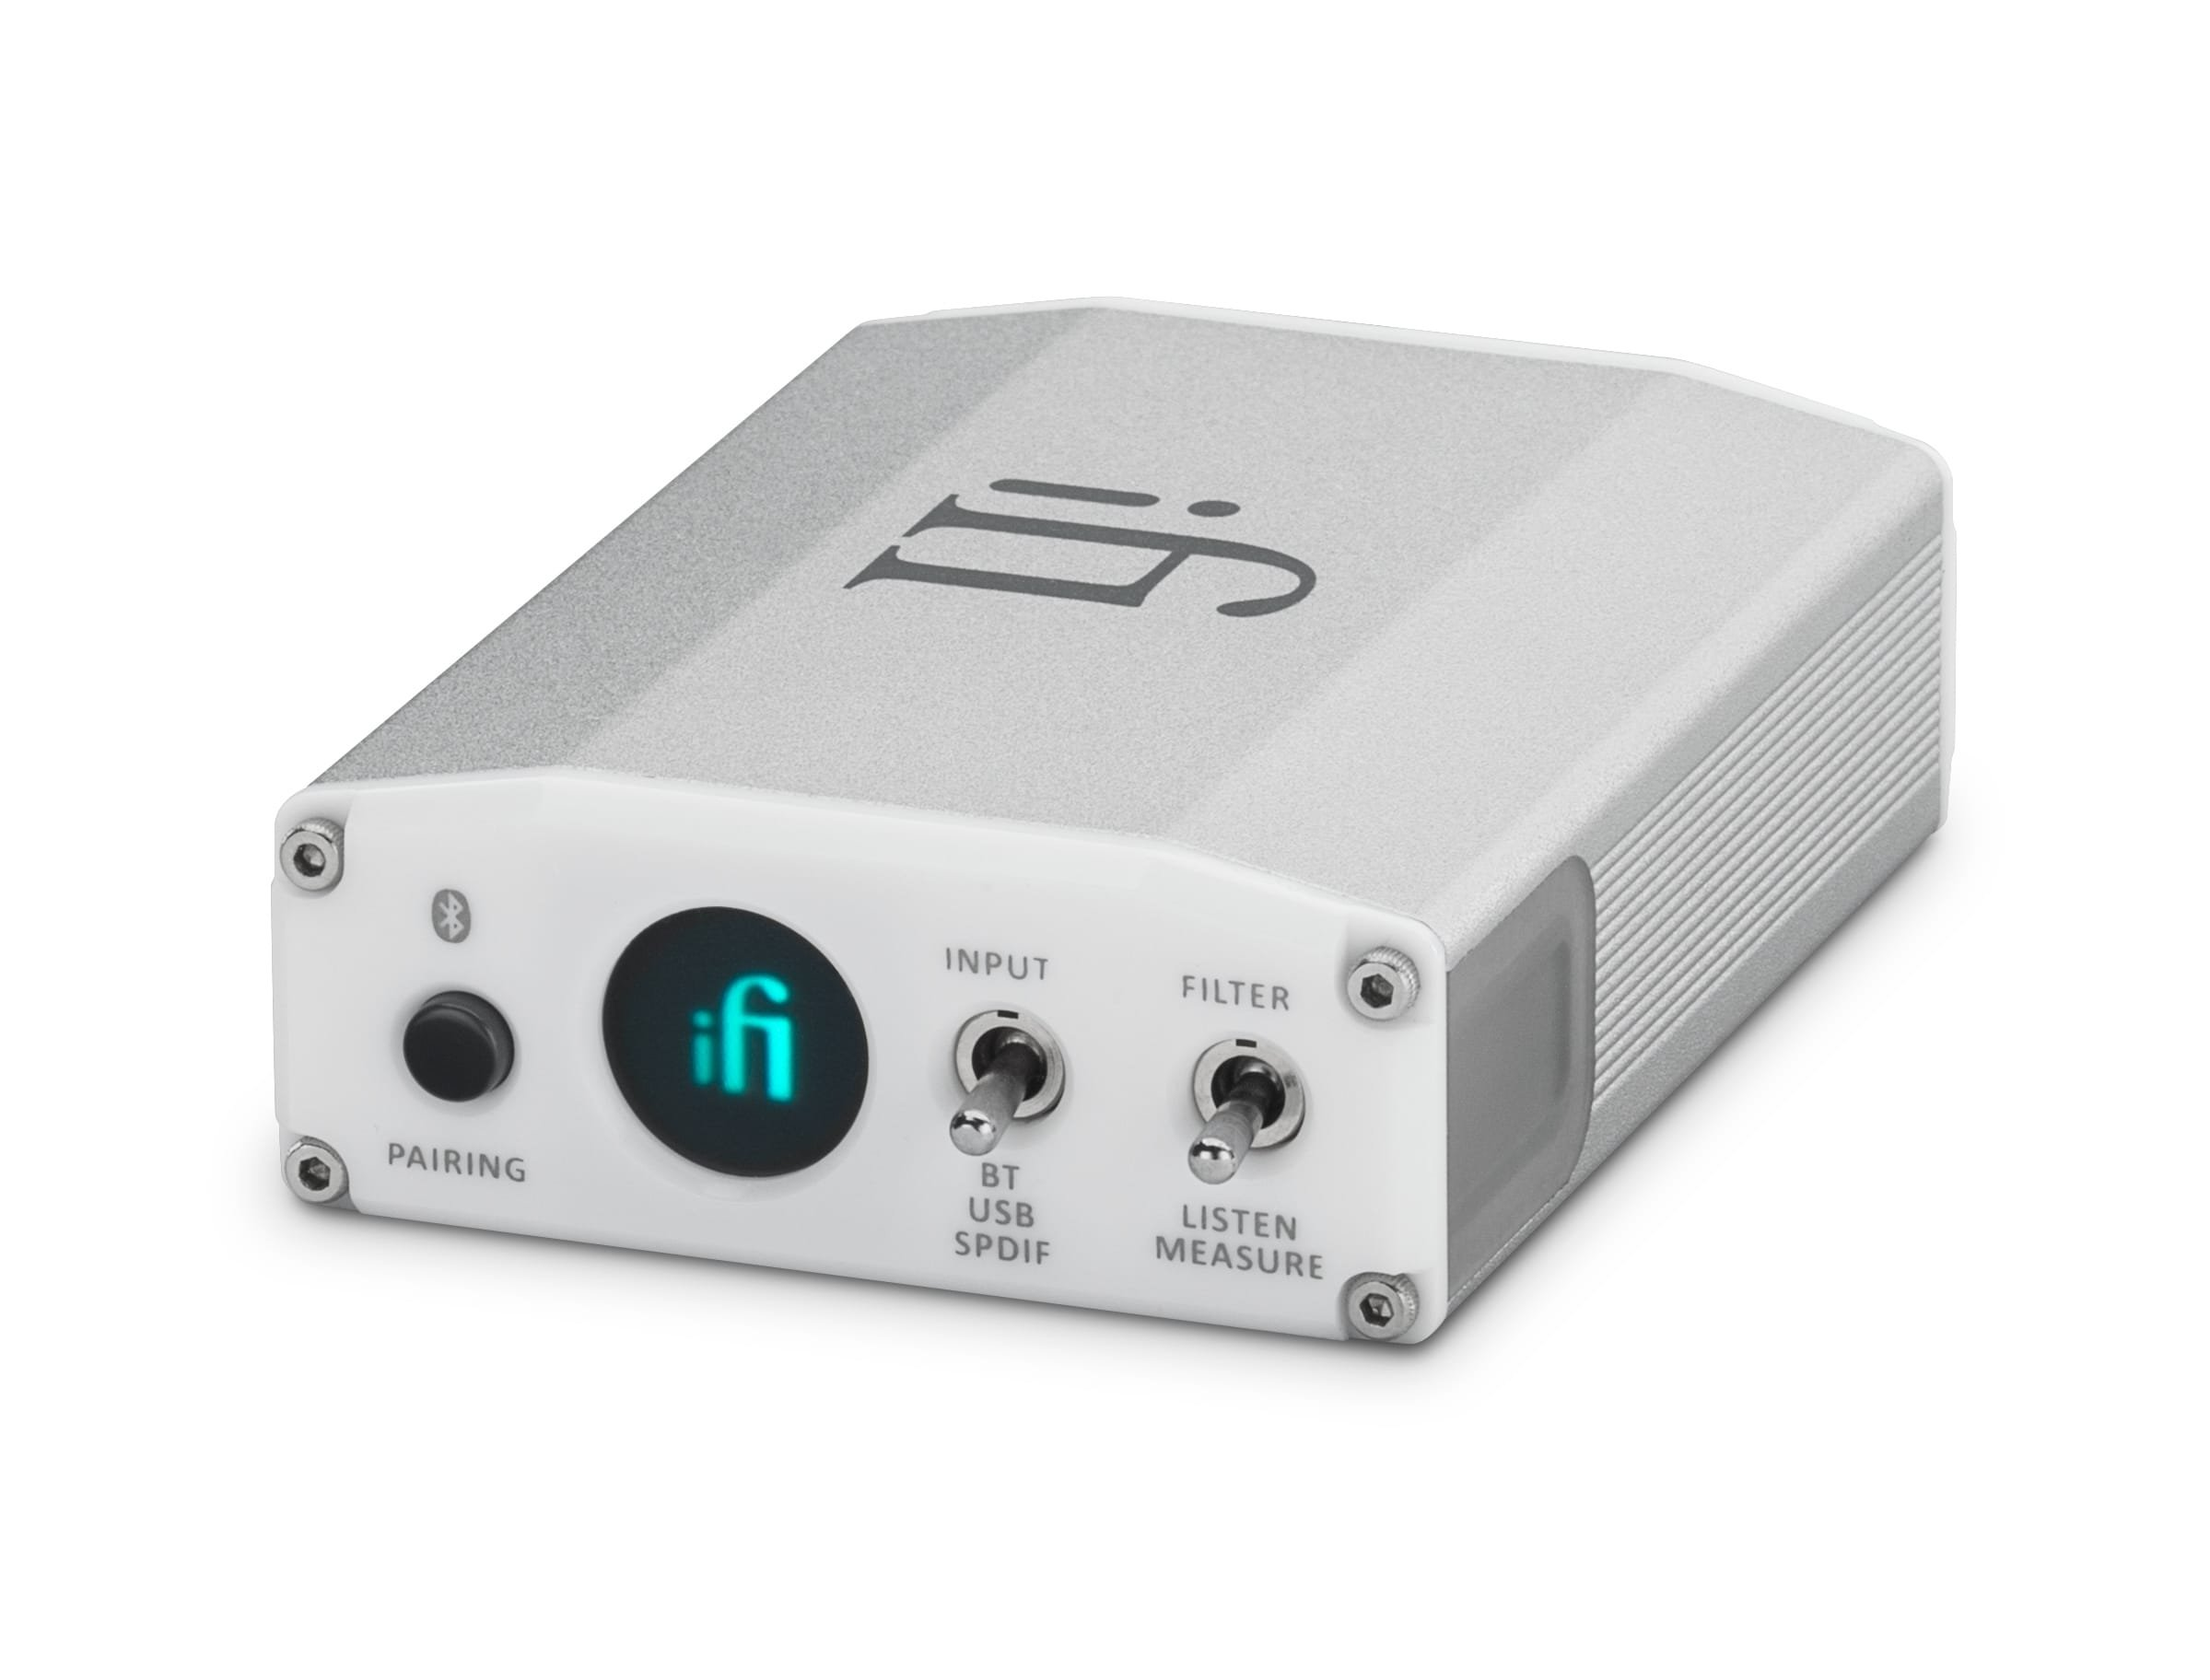 Nano iOne Home Audio DAC by IFI